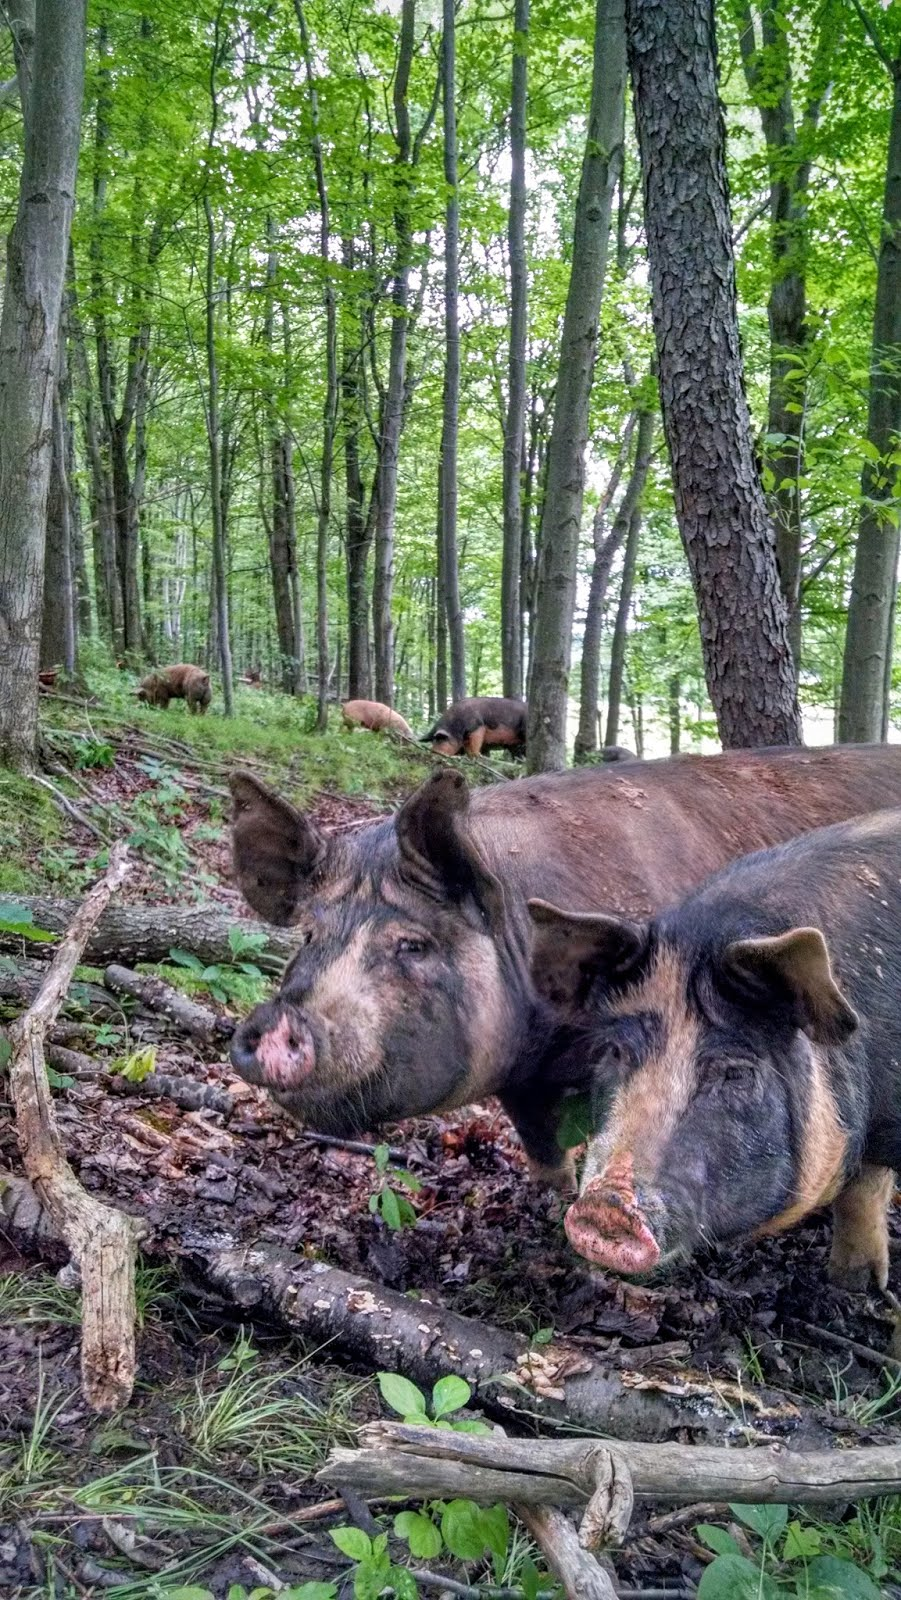 Woodlot & Pastured Pigs